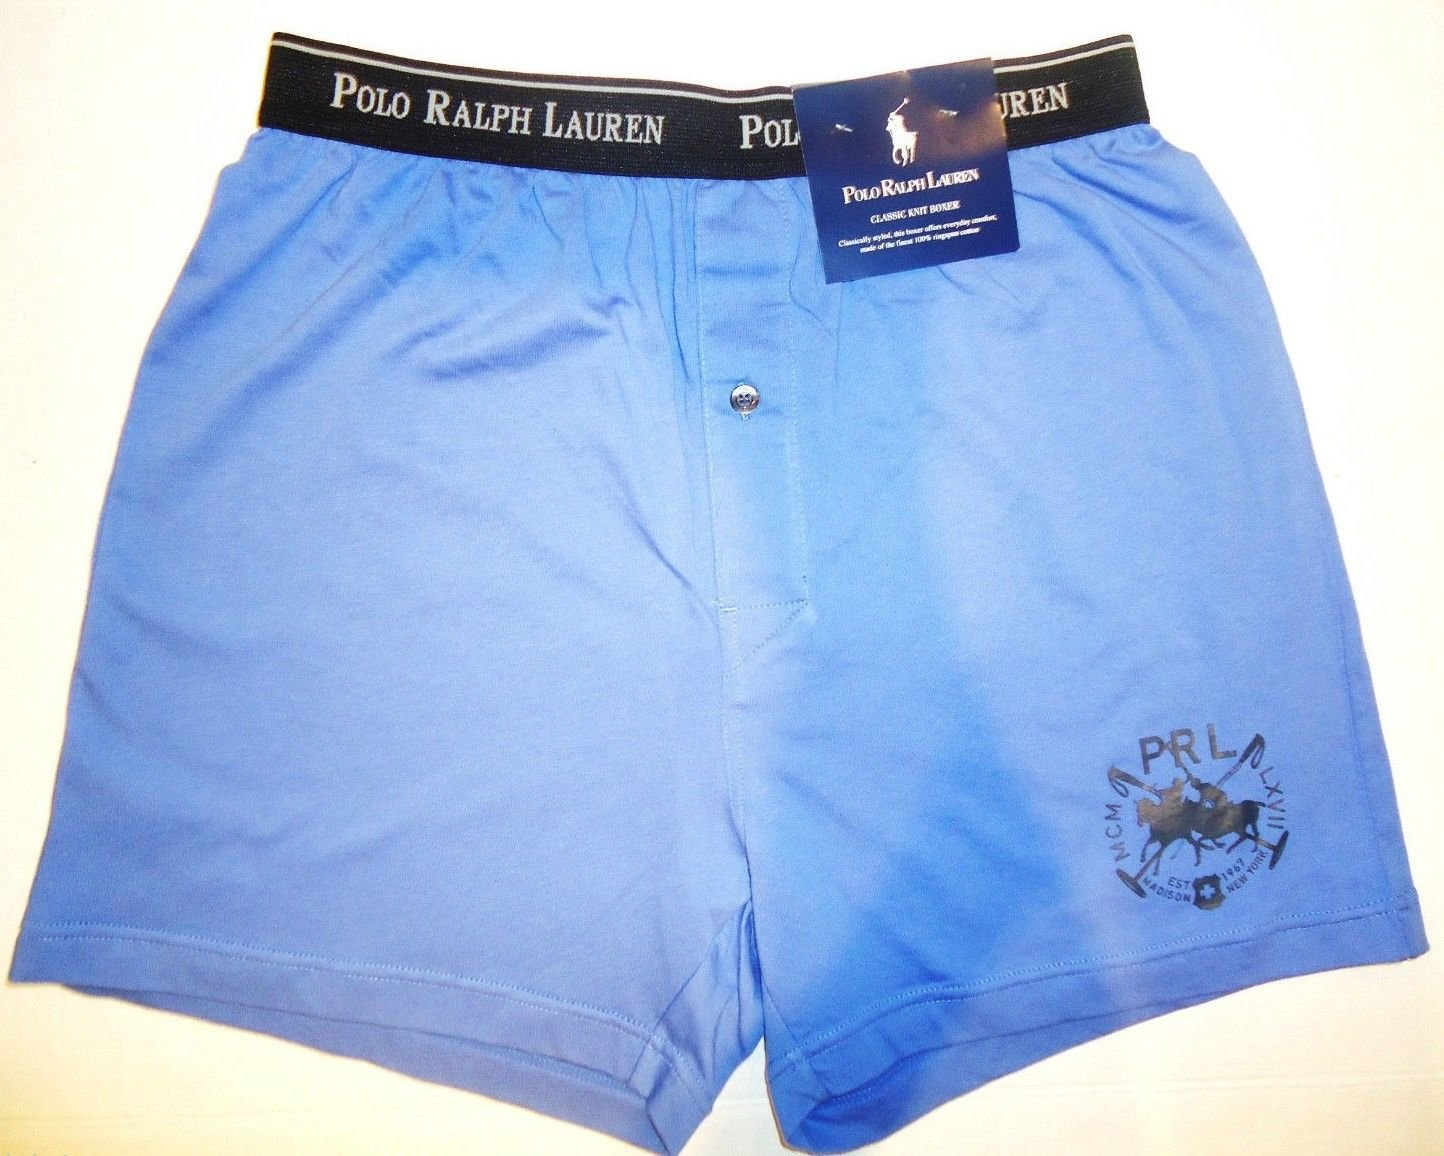 RALPH LAUREN - POLO - BLUE - CLASSIC - KNIT - BOXER - NEW - UNDERWEAR - S - RRL